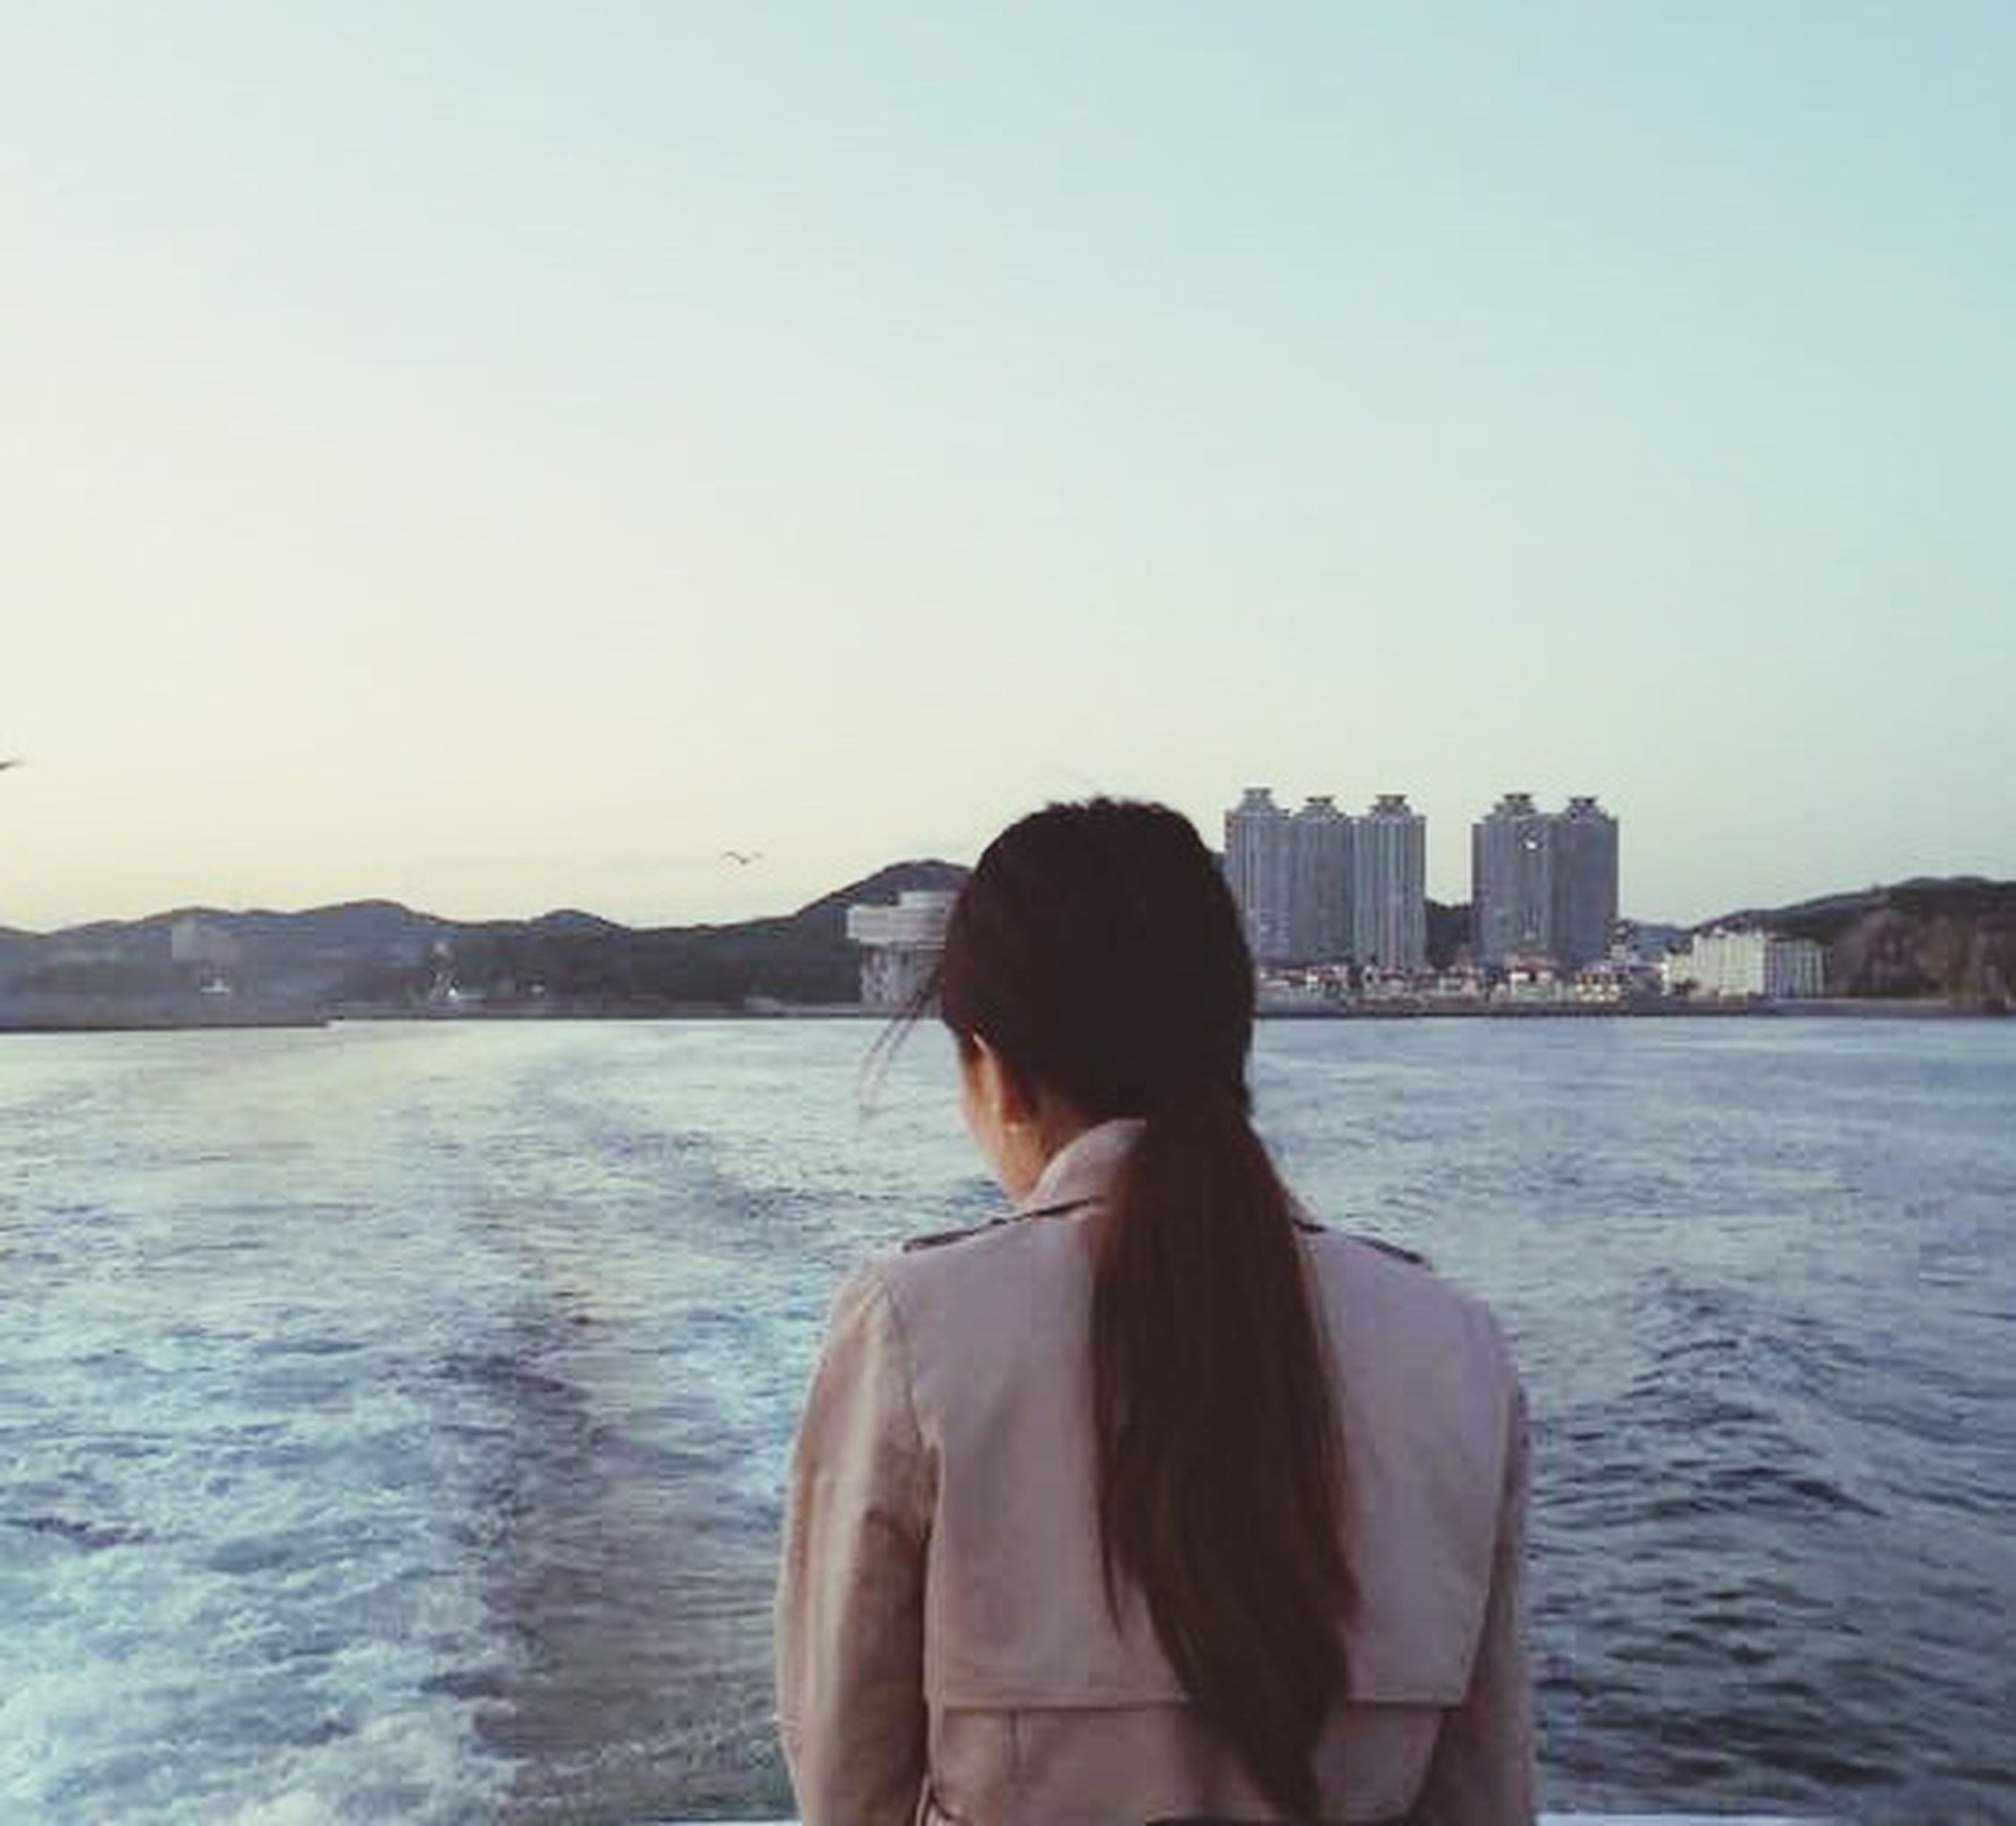 water, rear view, clear sky, lifestyles, sea, waist up, copy space, leisure activity, standing, looking at view, three quarter length, young adult, casual clothing, built structure, building exterior, river, architecture, city